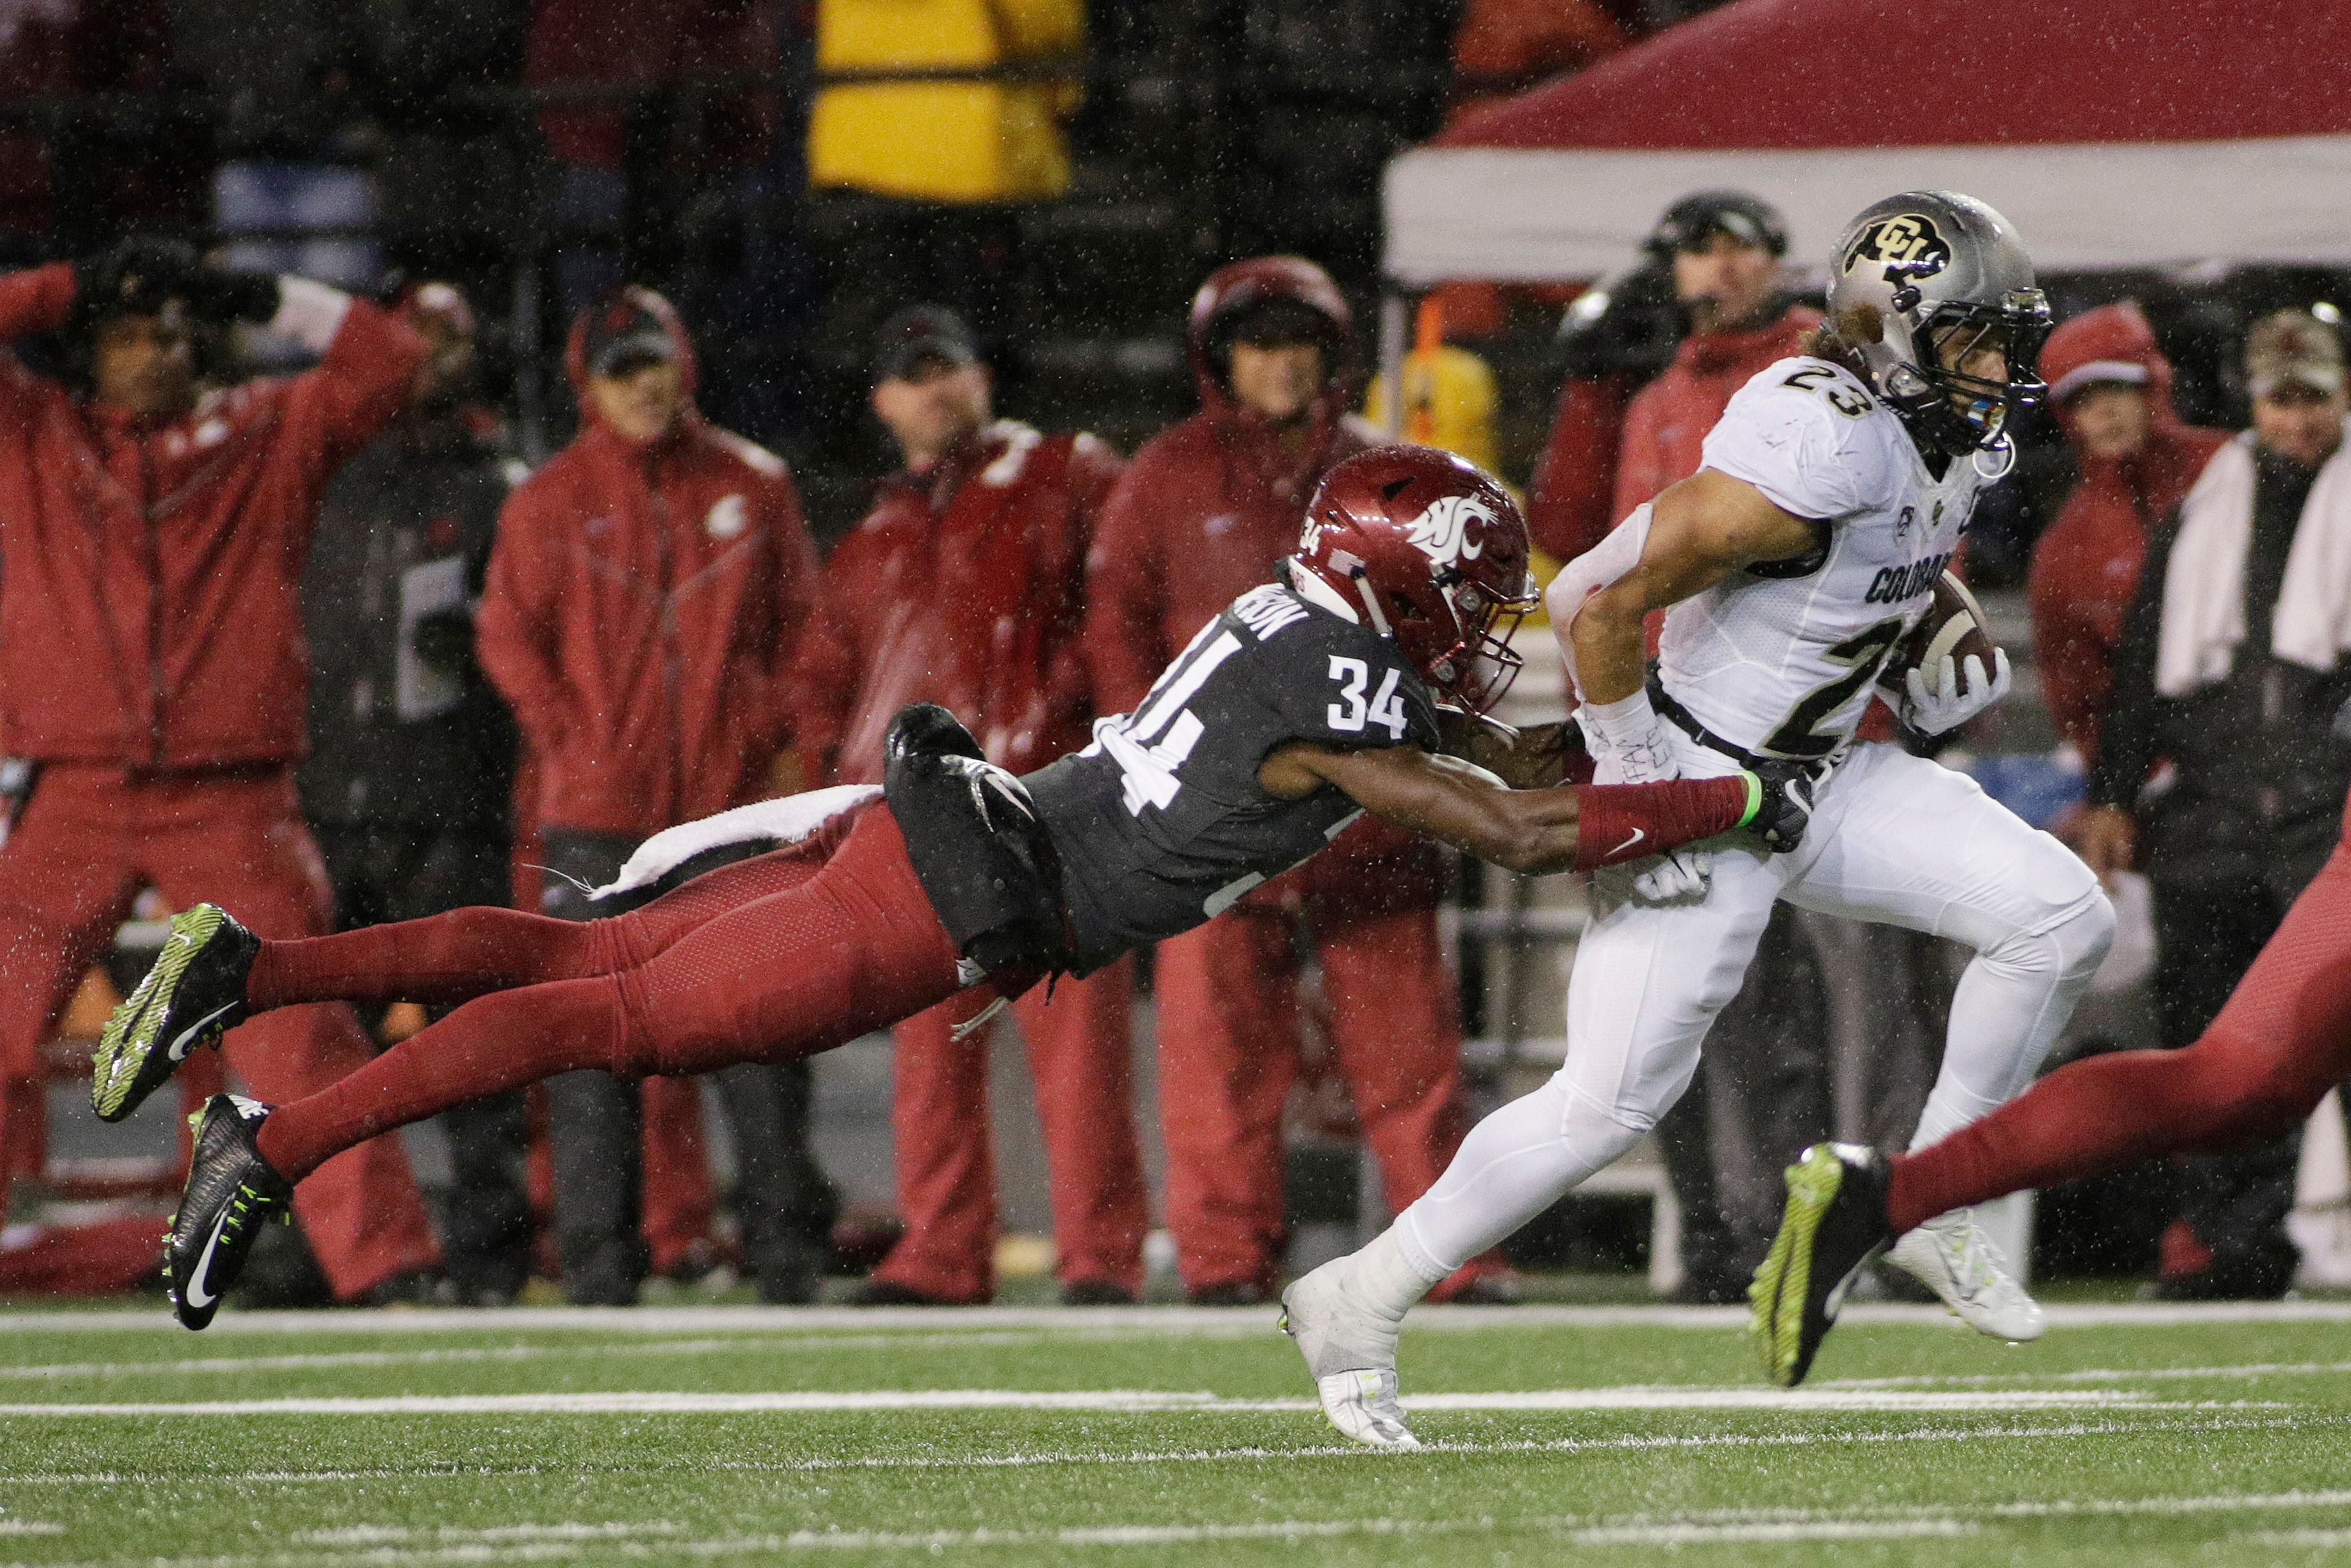 FILE - In this Oct. 21, 2017, file photo, Washington State safety Jalen Thompson (34) tackles Colorado running back Phillip Lindsay (23) during the first half of an NCAA college football game, in Pullman, Wash. Thompson was selected to the AP All-Conference Pac-12 team announced Thursday, Dec. 7, 2017. (AP Photo/Young Kwak, File)